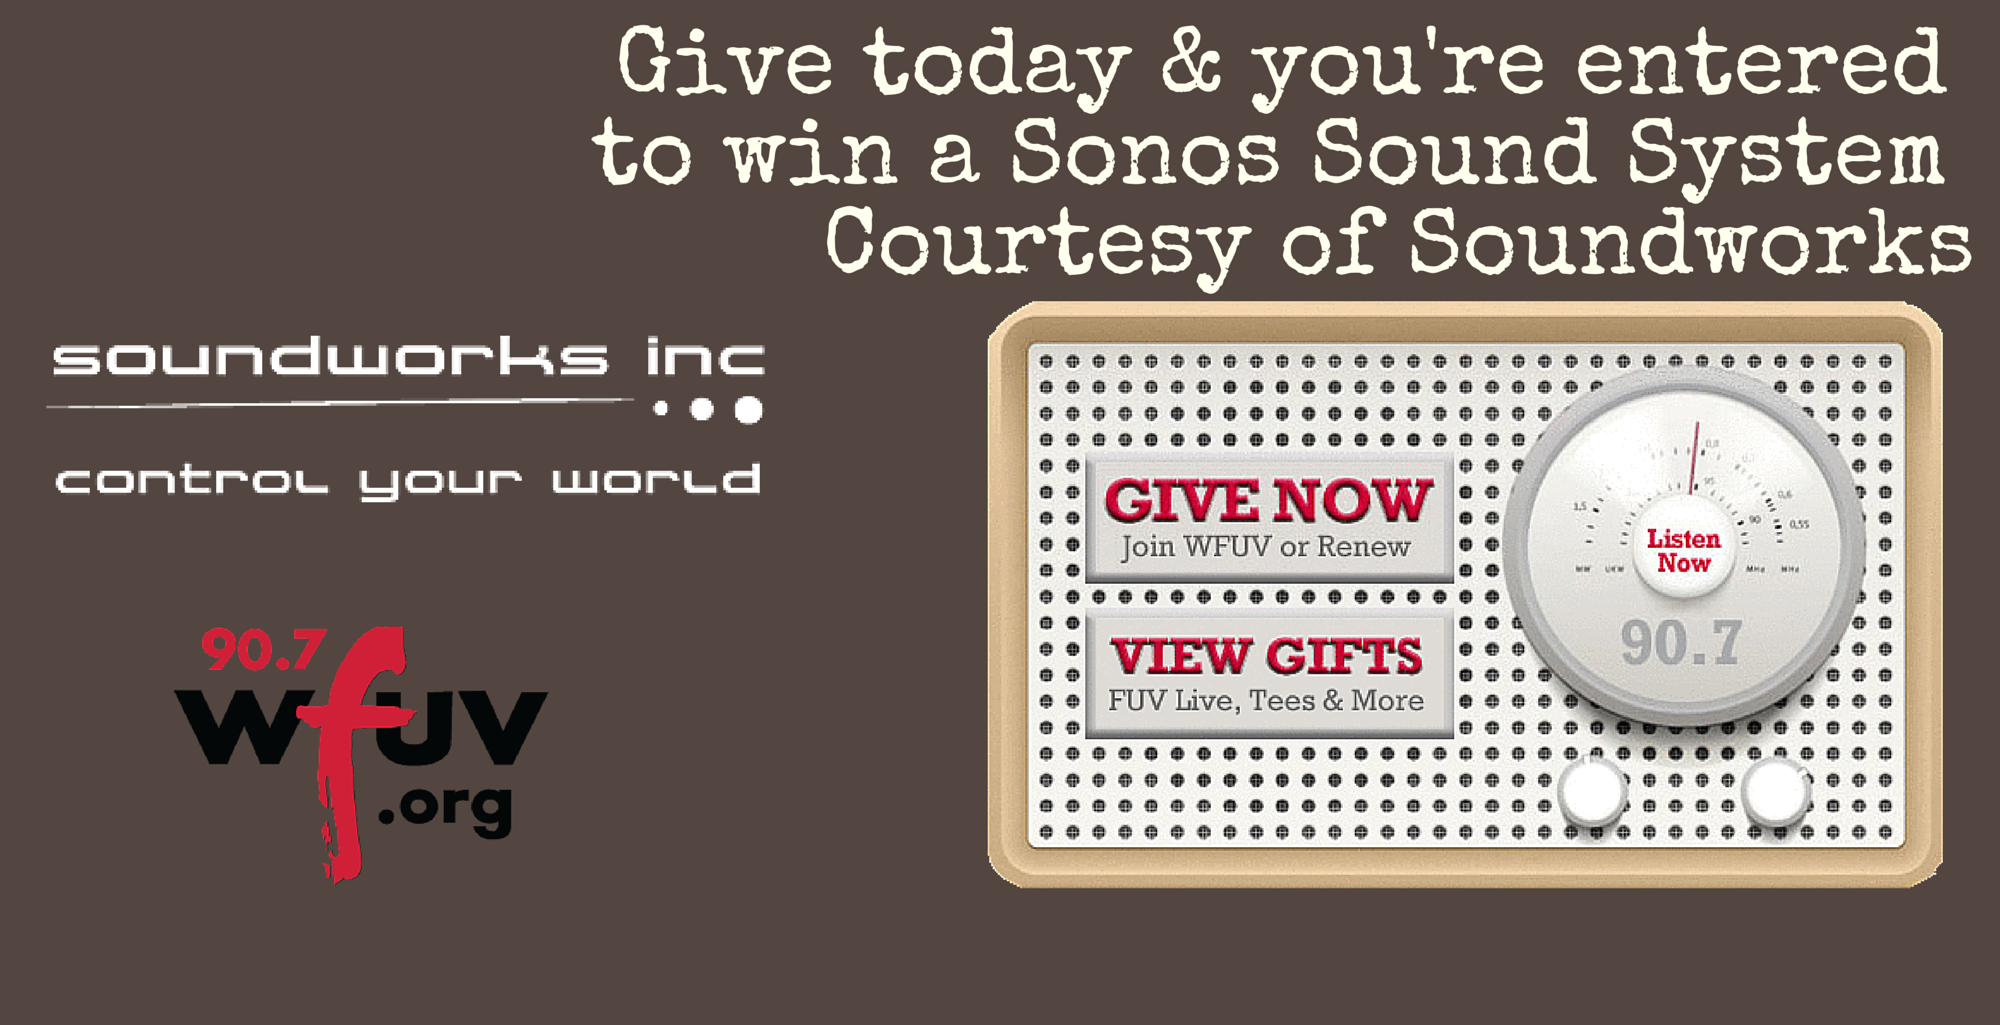 soundworks Give to 90.7 WFUV and Win! -